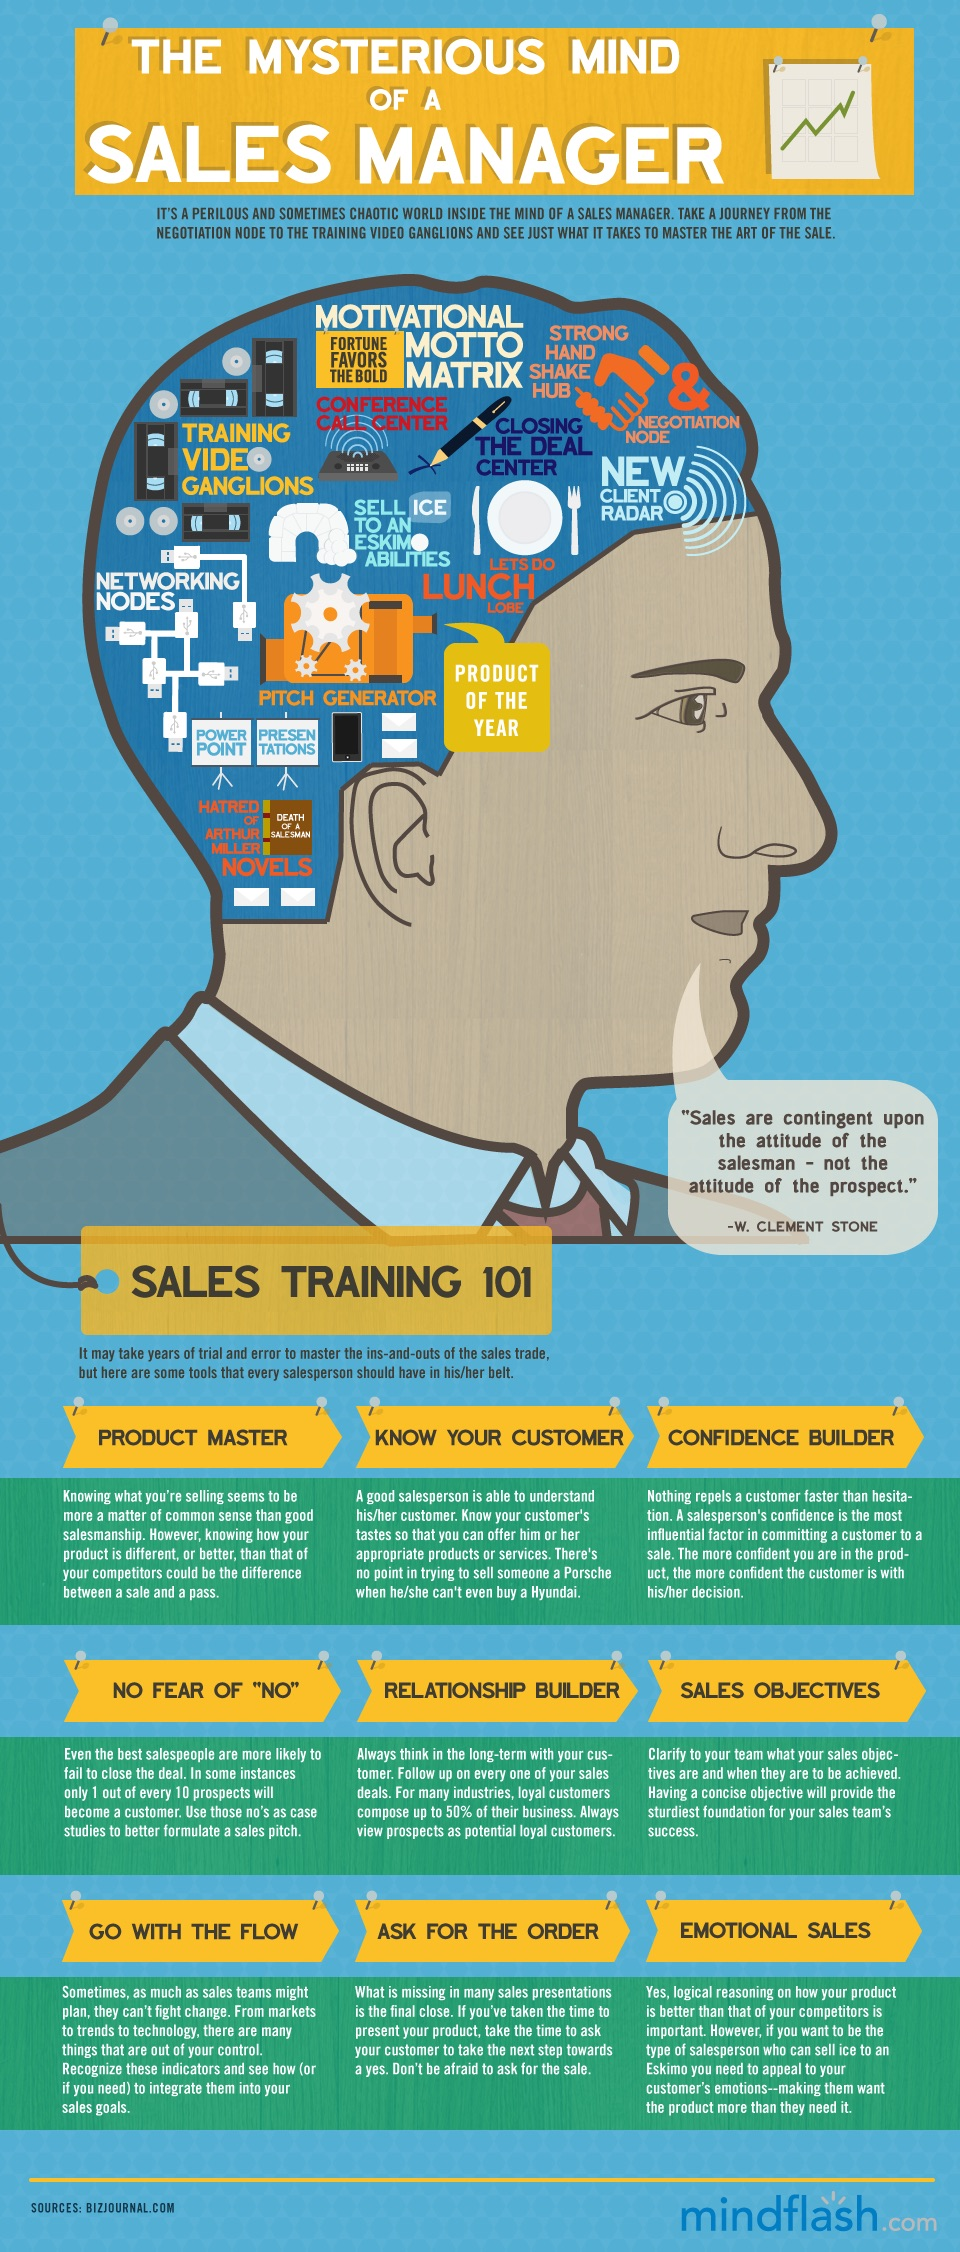 Mysterious Mind of Sales Manager